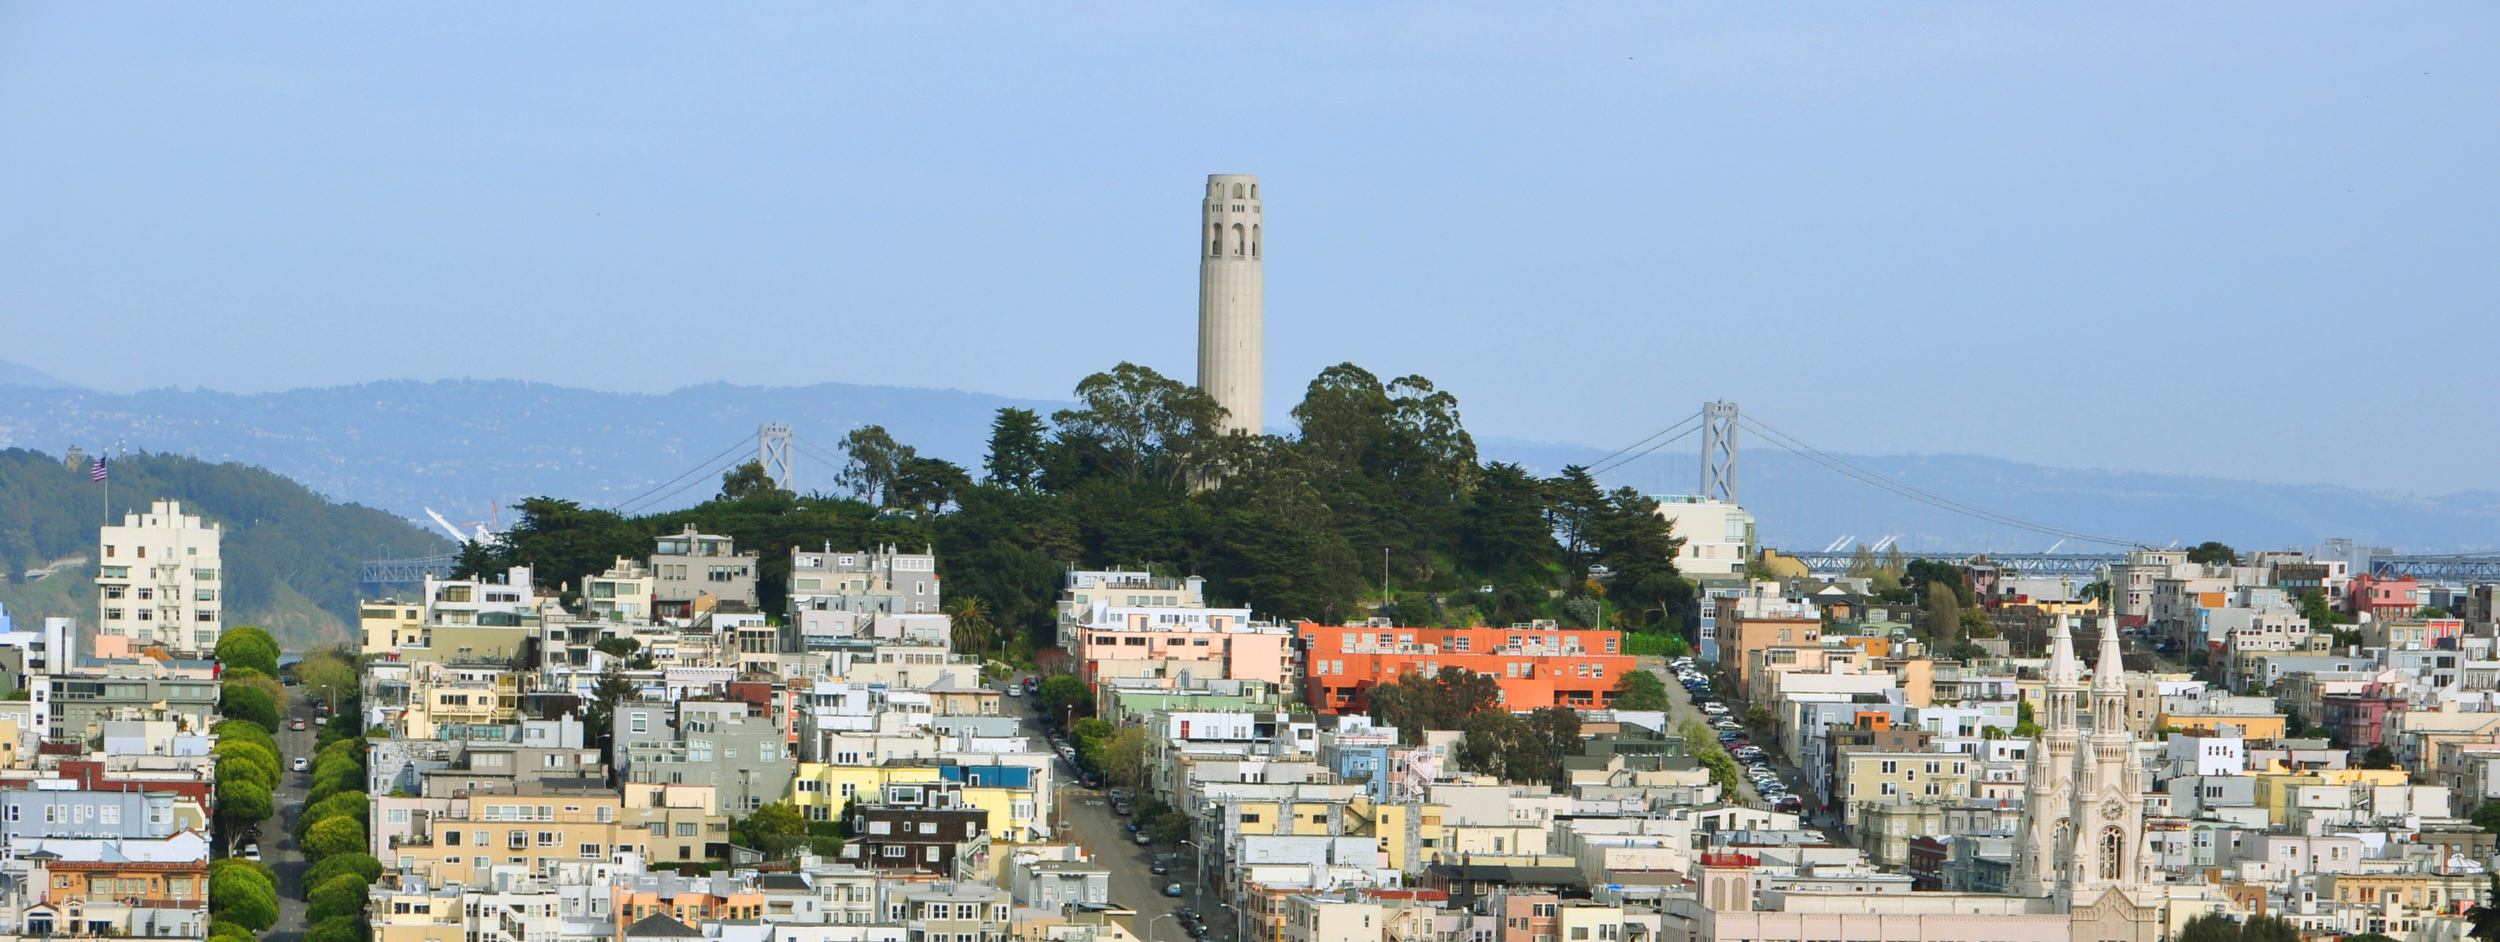 In nearby Telegraph Hill stands Coit Tower, a 210-foot structure also known as the Lillian Coit Memorial Tower.